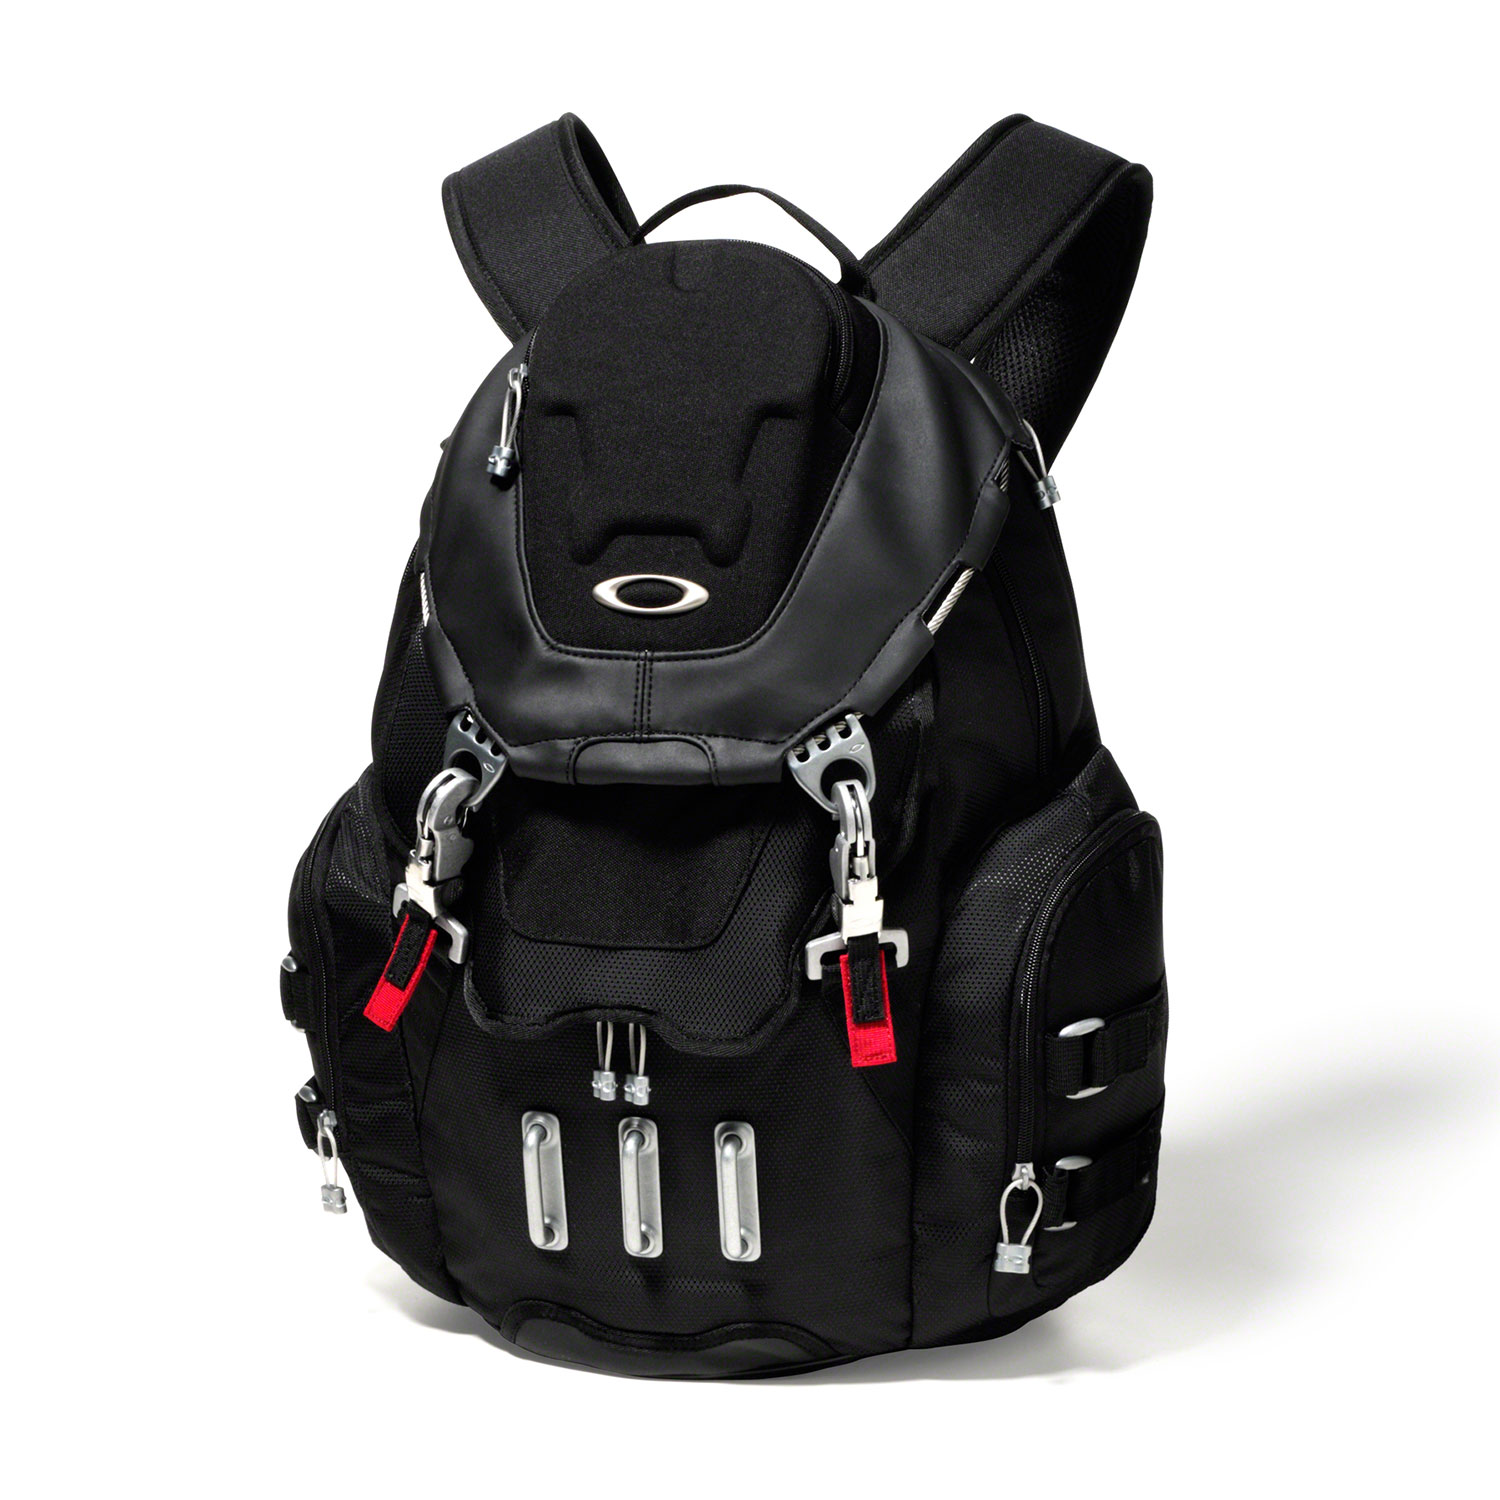 oakley kitchen sink backpack review faucet aerator parts bathroom